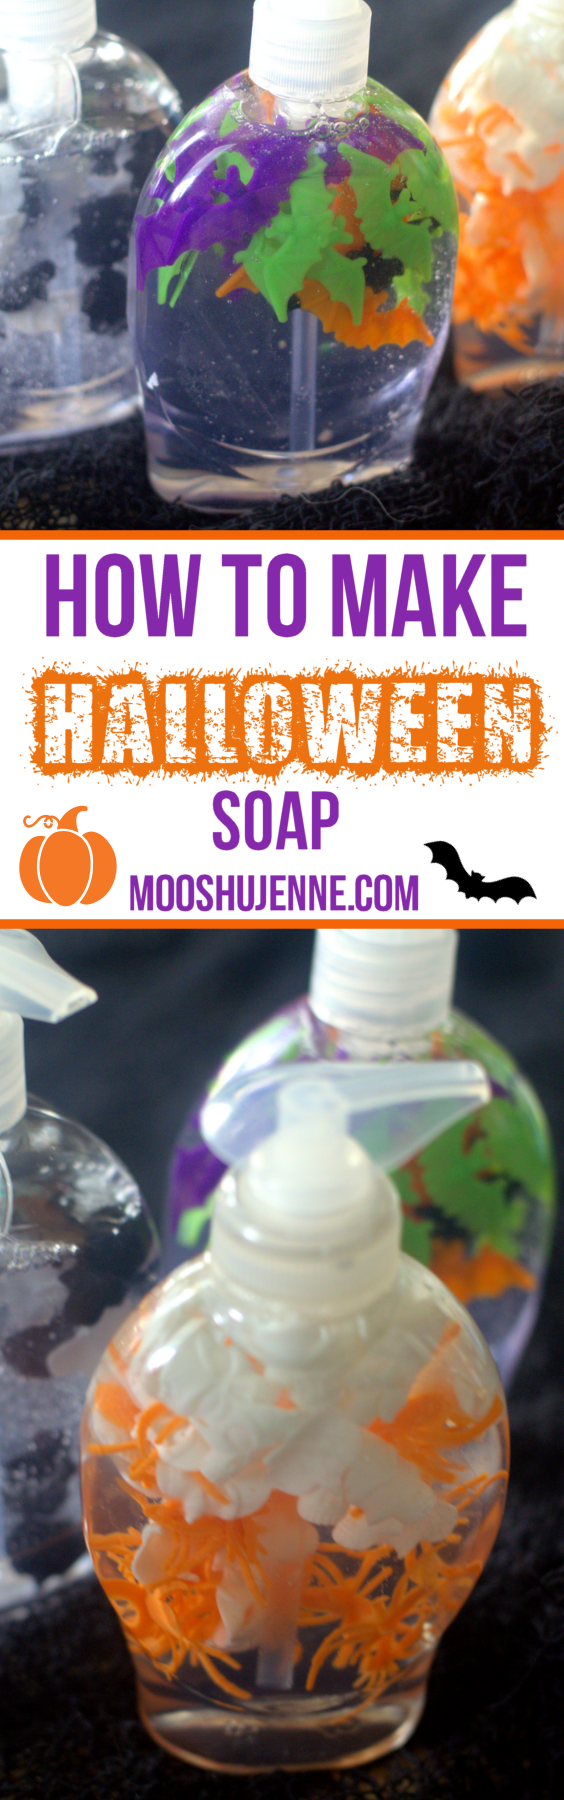 How To Make Halloween Soap with Halloween Novelty toys.